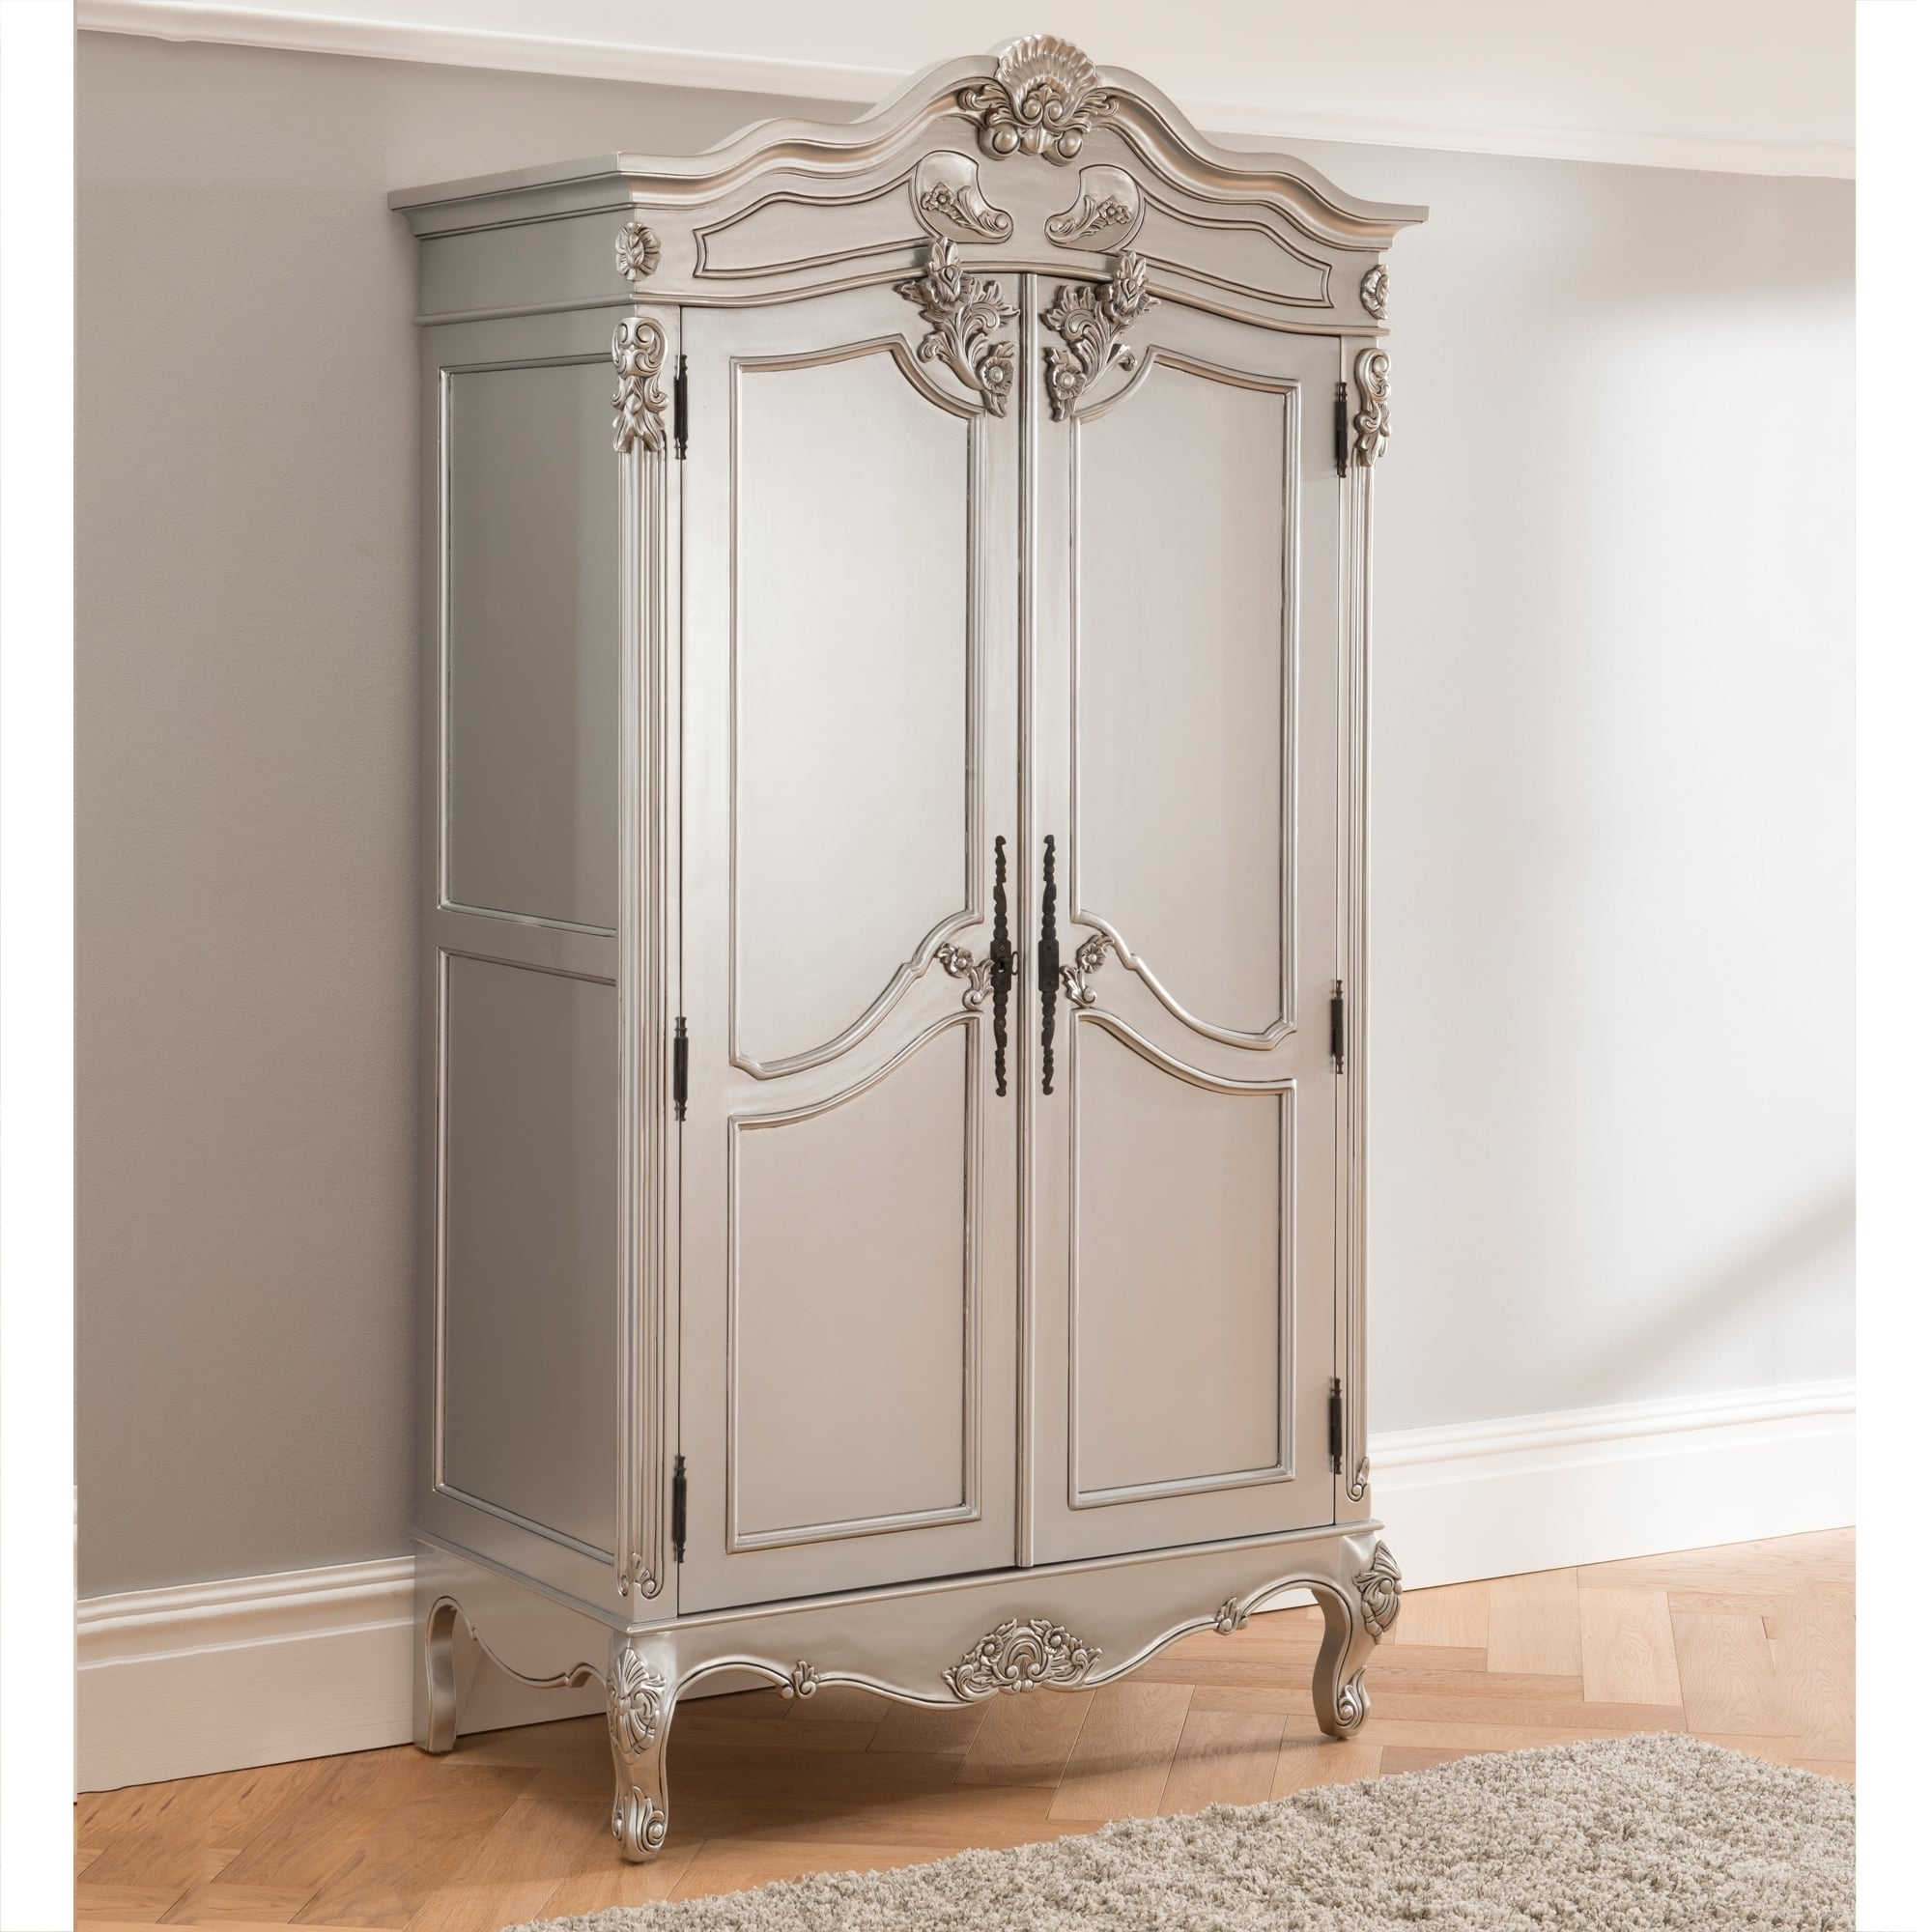 Most Popular Home Design : Graceful French Shabby Chic Wardrobes Vintage For Vintage Style Wardrobes (View 6 of 15)